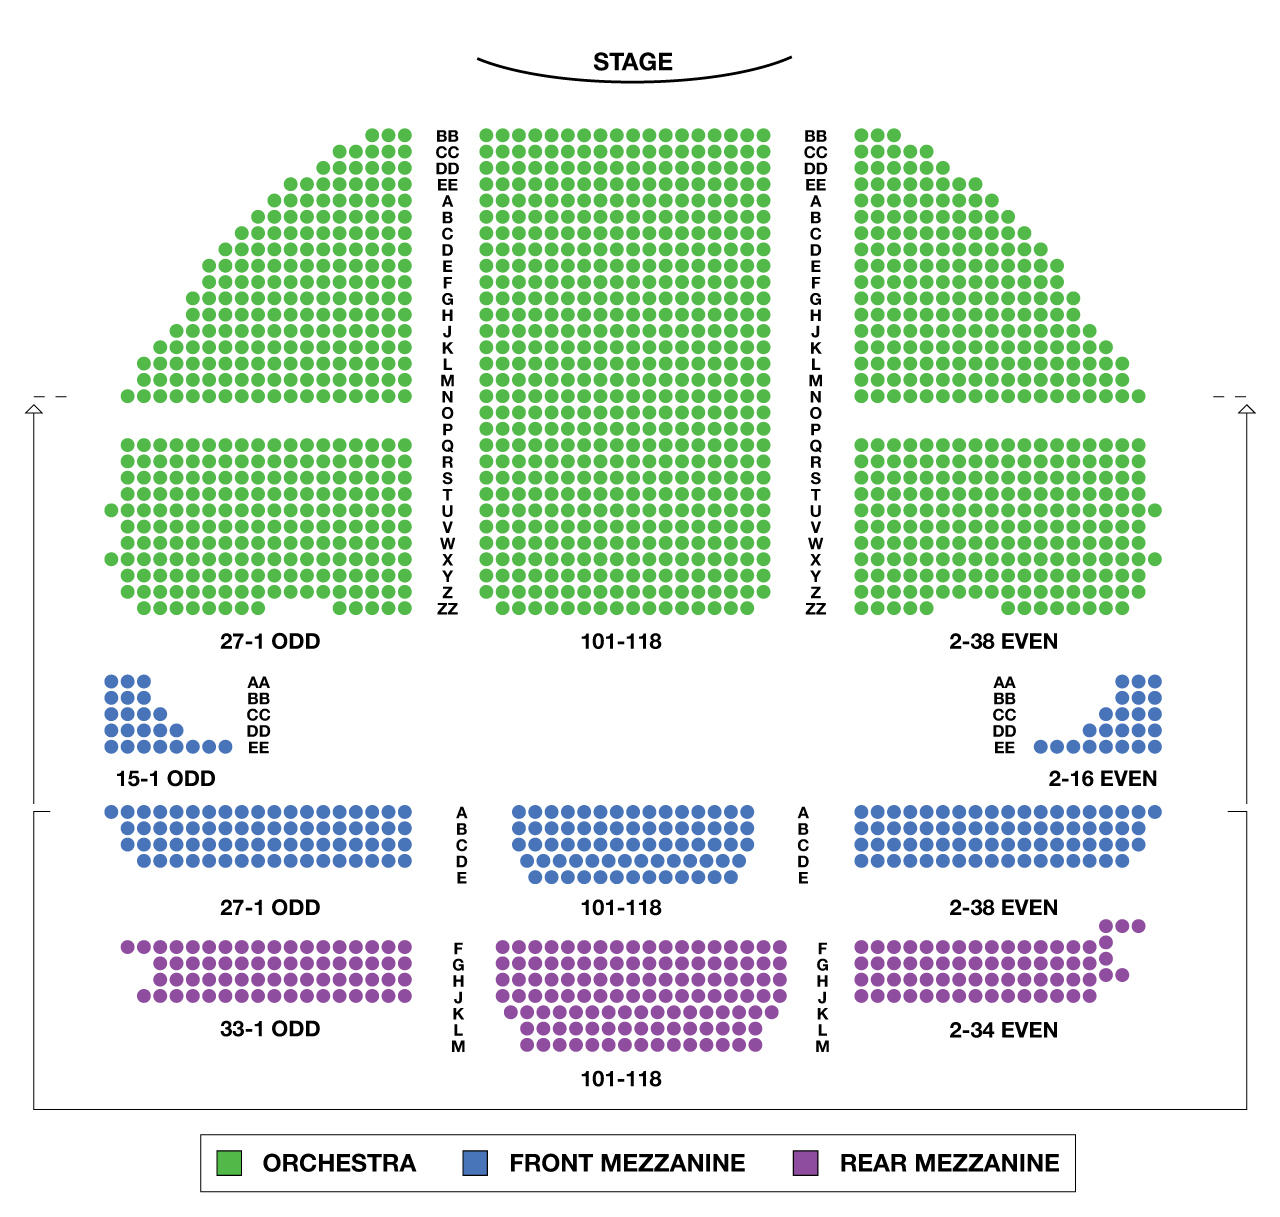 Gershwin Theatre Large Broadway Seating Charts